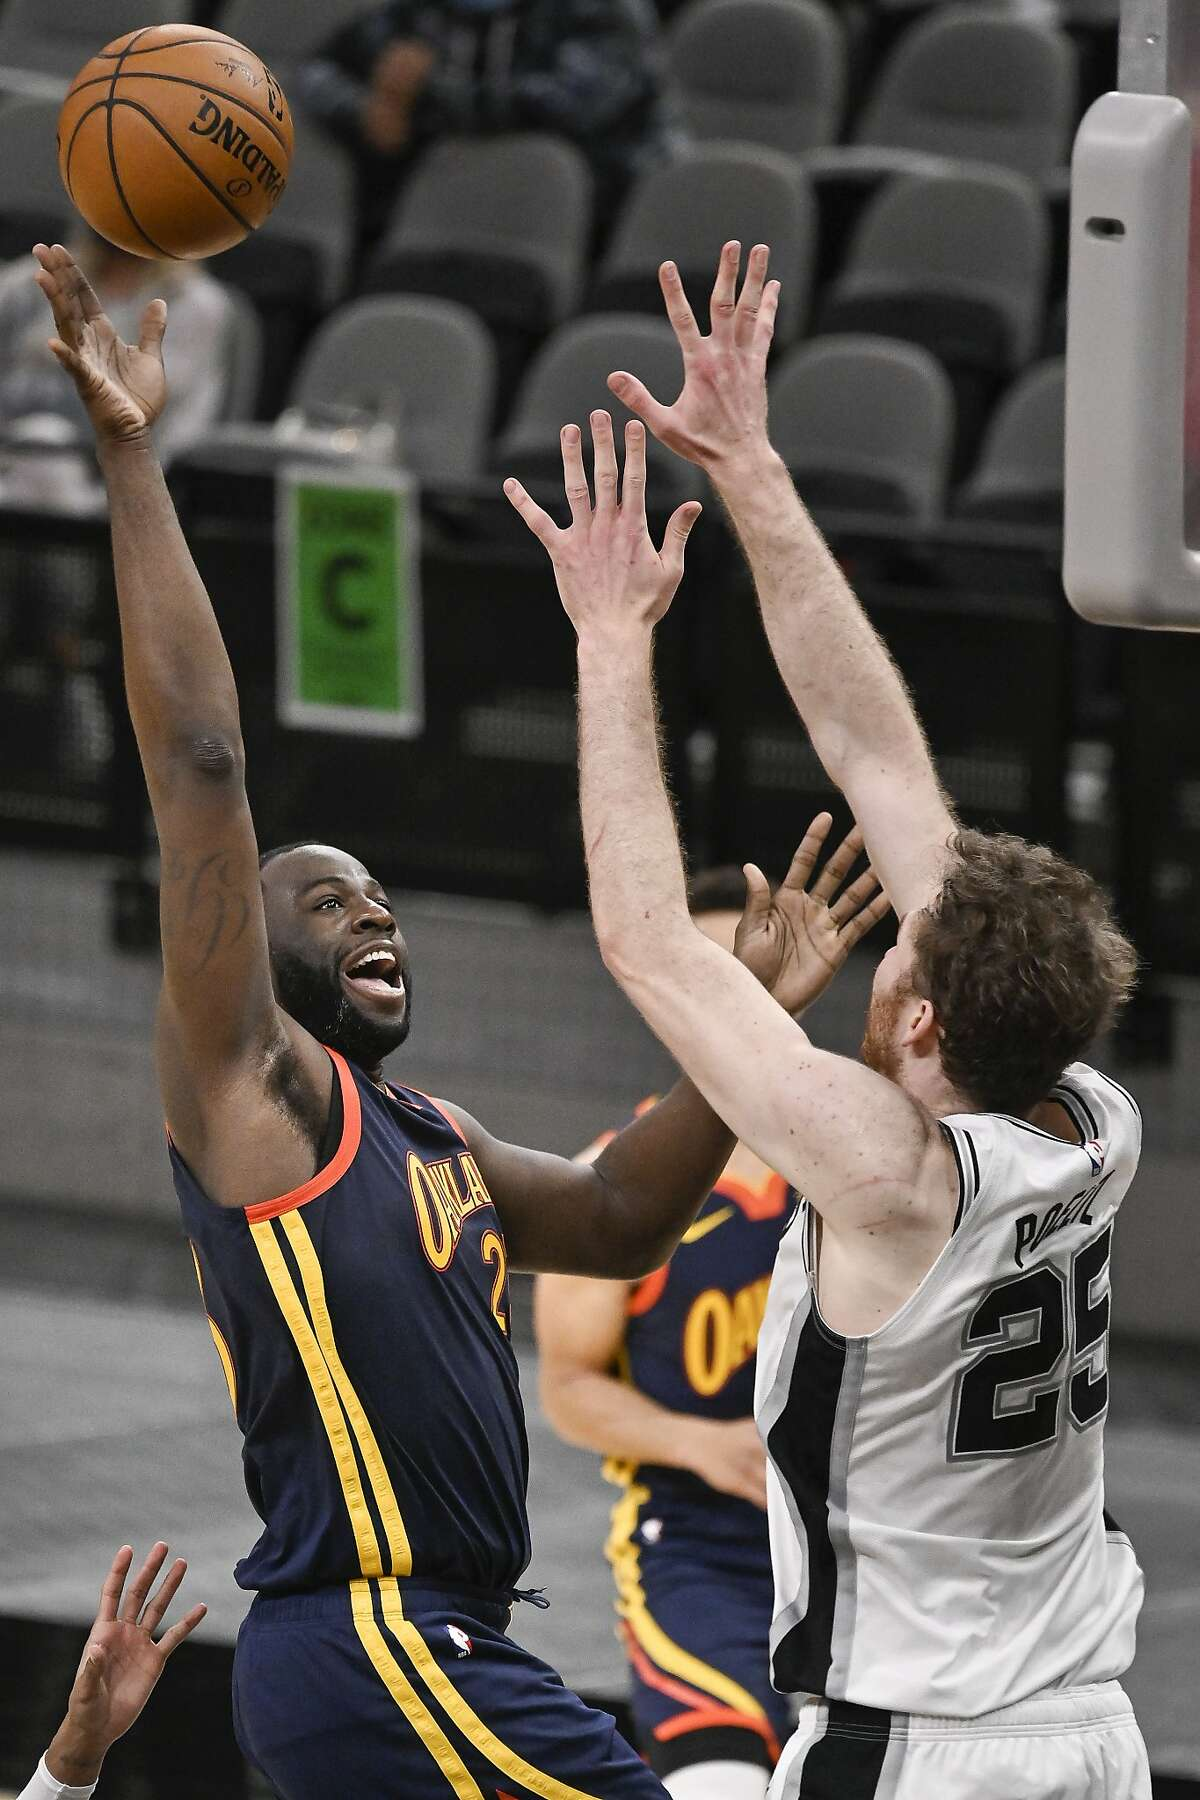 Golden State Warriors' Draymond Green, left, shoots against San Antonio Spurs' Jakob Poeltl during the second half of an NBA basketball game, Monday, Feb. 8, 2021, in San Antonio. (AP Photo/Darren Abate)